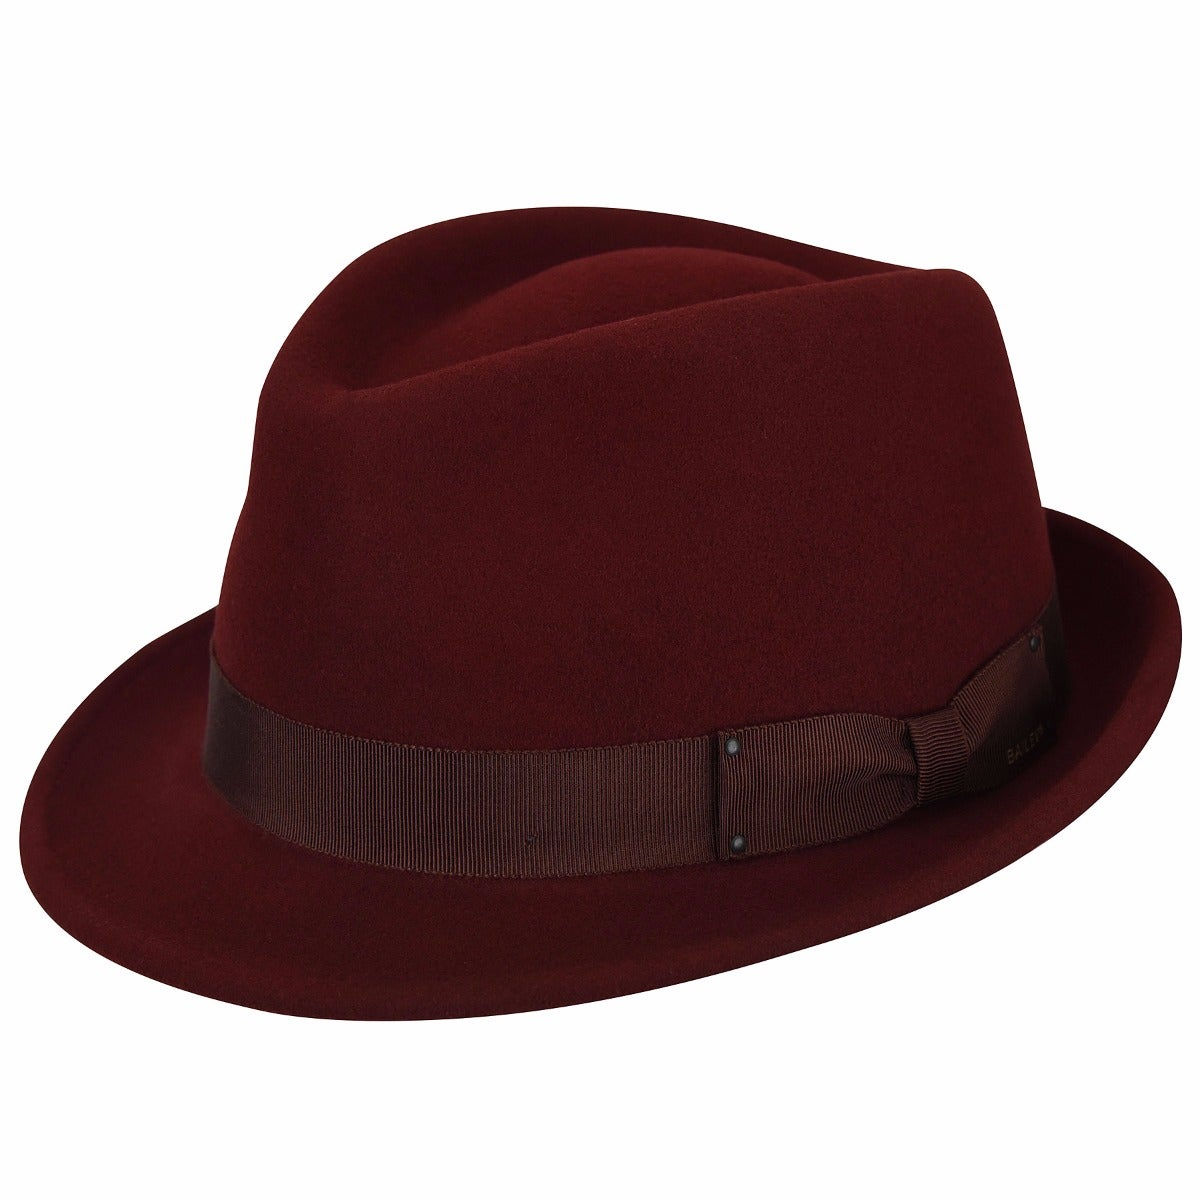 1960s – 70s Style Men's Hats Wynn LiteFelt Fedora $98.00 AT vintagedancer.com